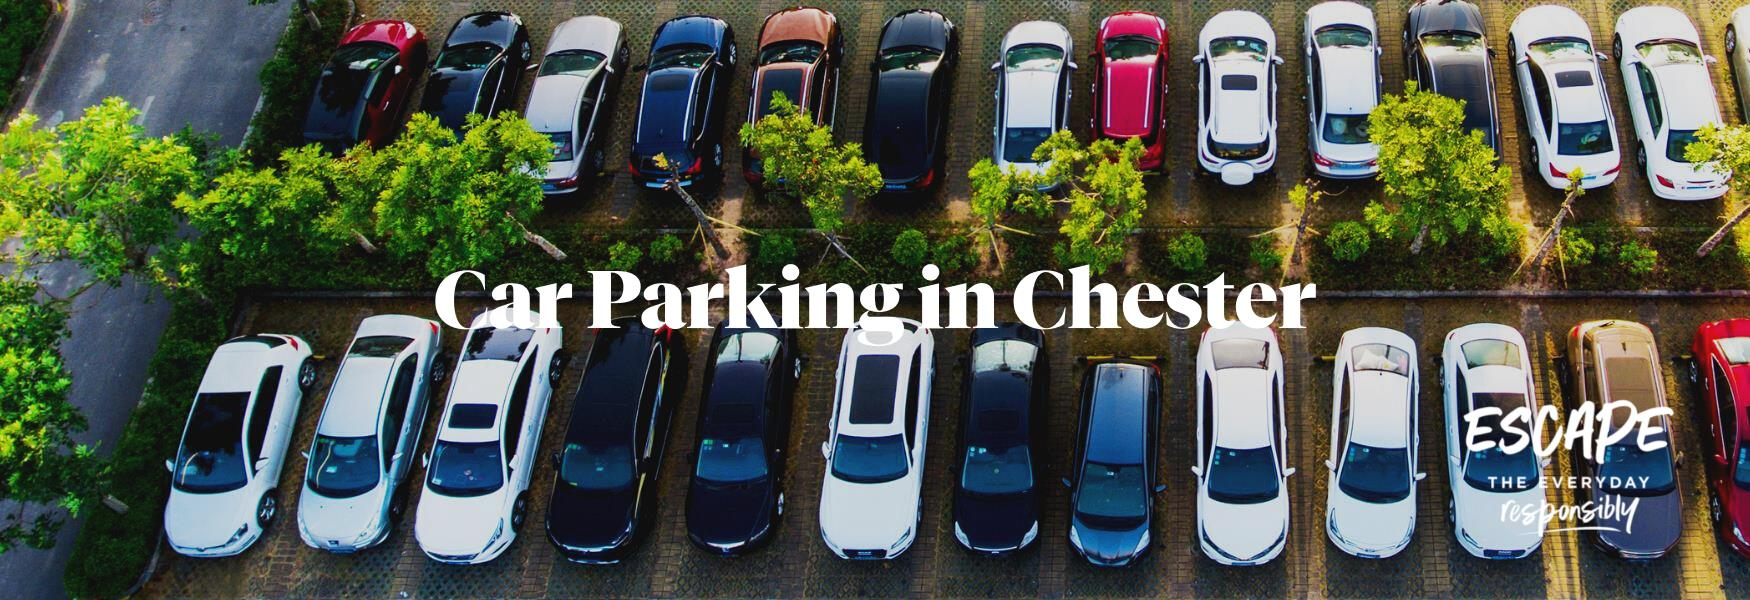 Car Parking in Chester & Cheshire